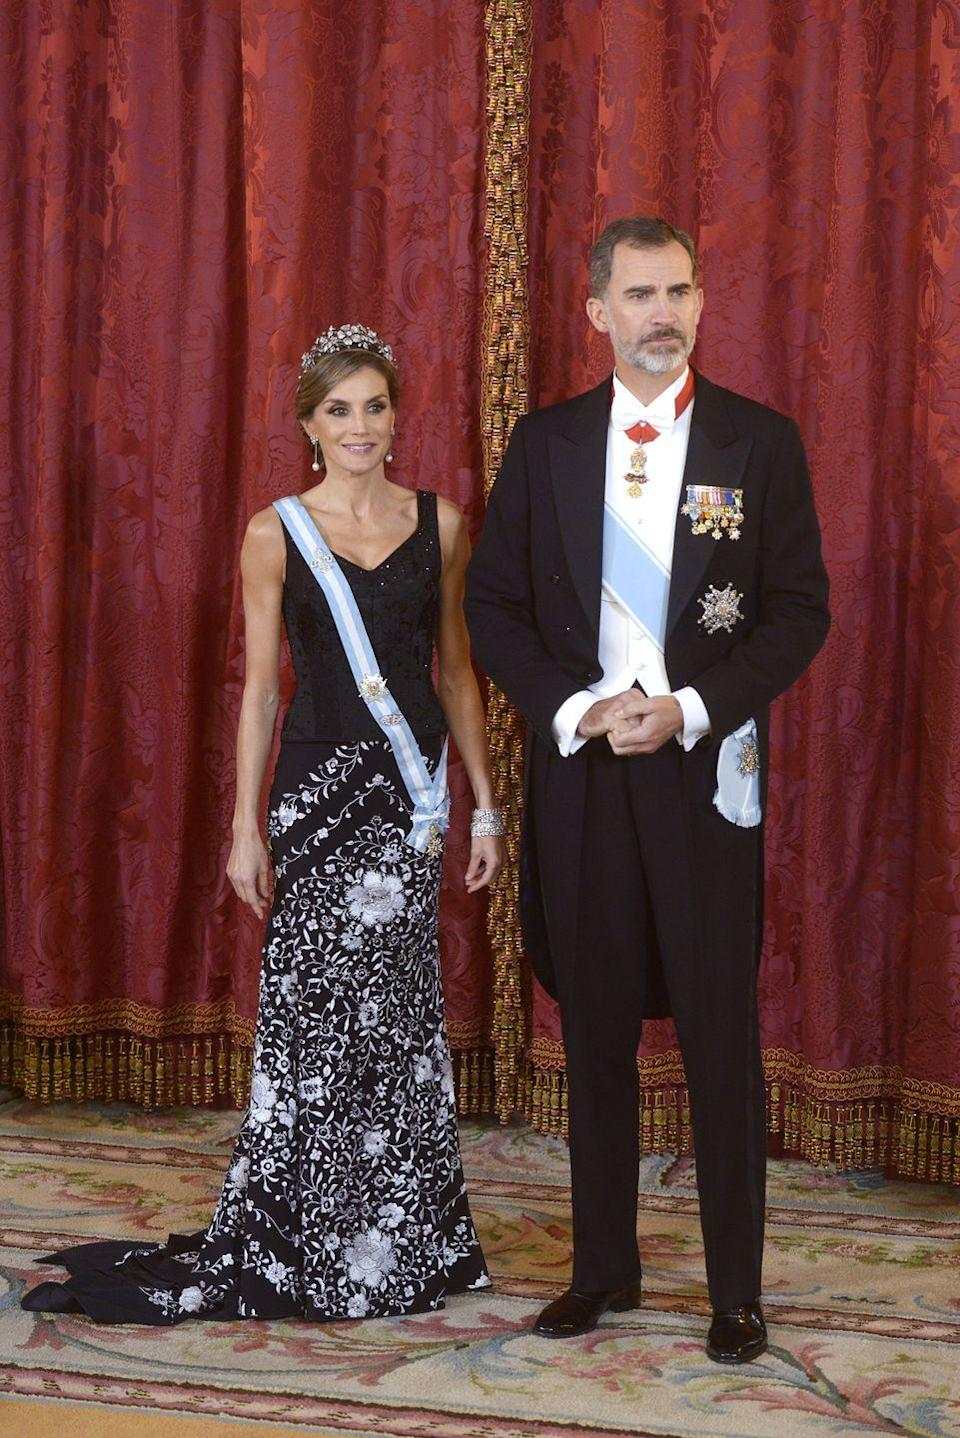 <p>Queen Letizia looked stunning in the Mellerio Floral Tiara, a gorgeous tiara that belongs to her mother-in-law Queen Sofia. Letizia wore a black and white skirt by Lorenzo Caprile paired with a black top for a gala dinner in honor of the Israeli President Reuven Rivlin.</p>